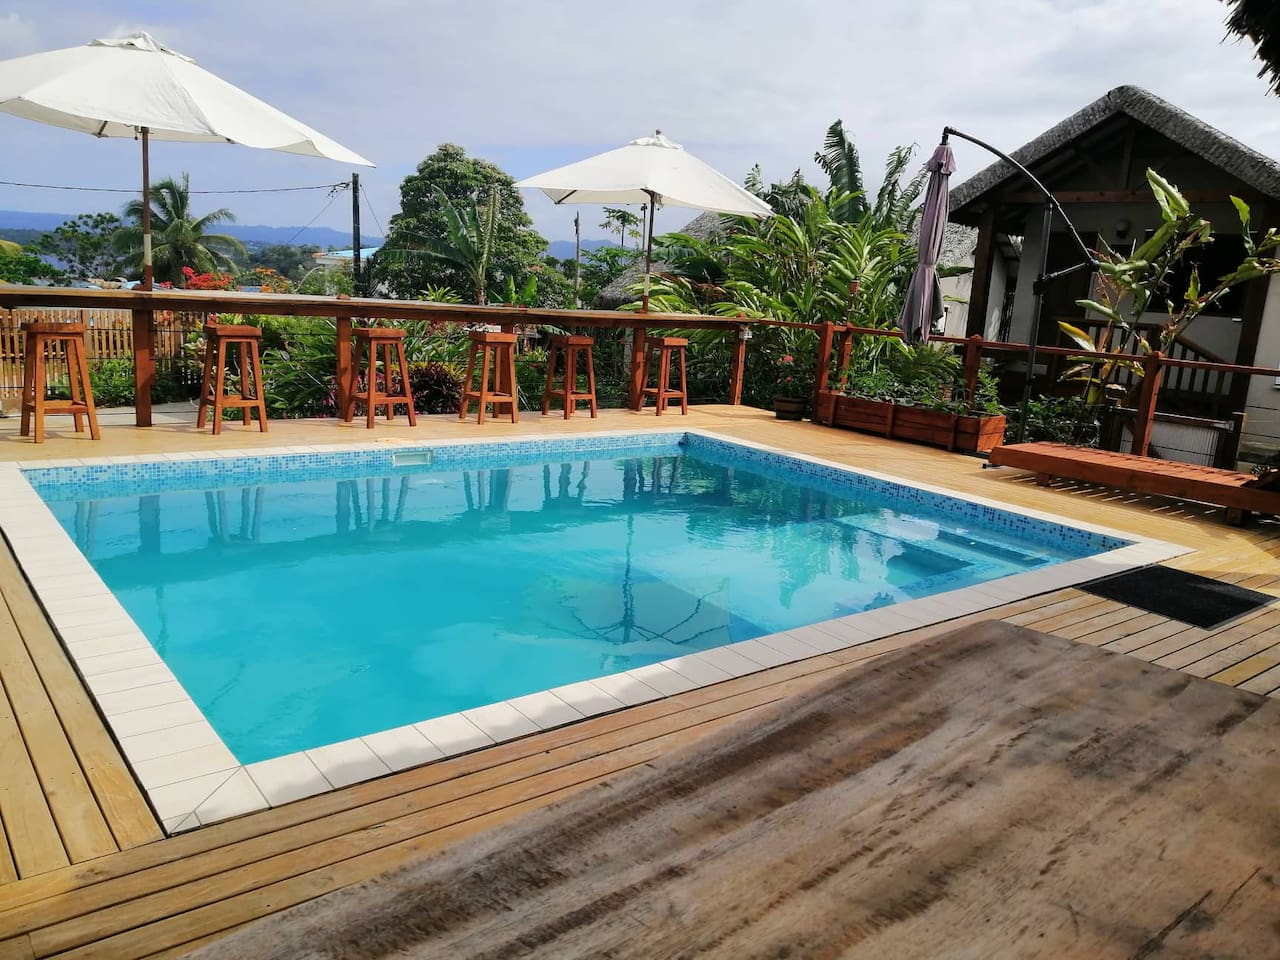 The completed outdoor pool/ lounge area with the Kiwi Nest in the background